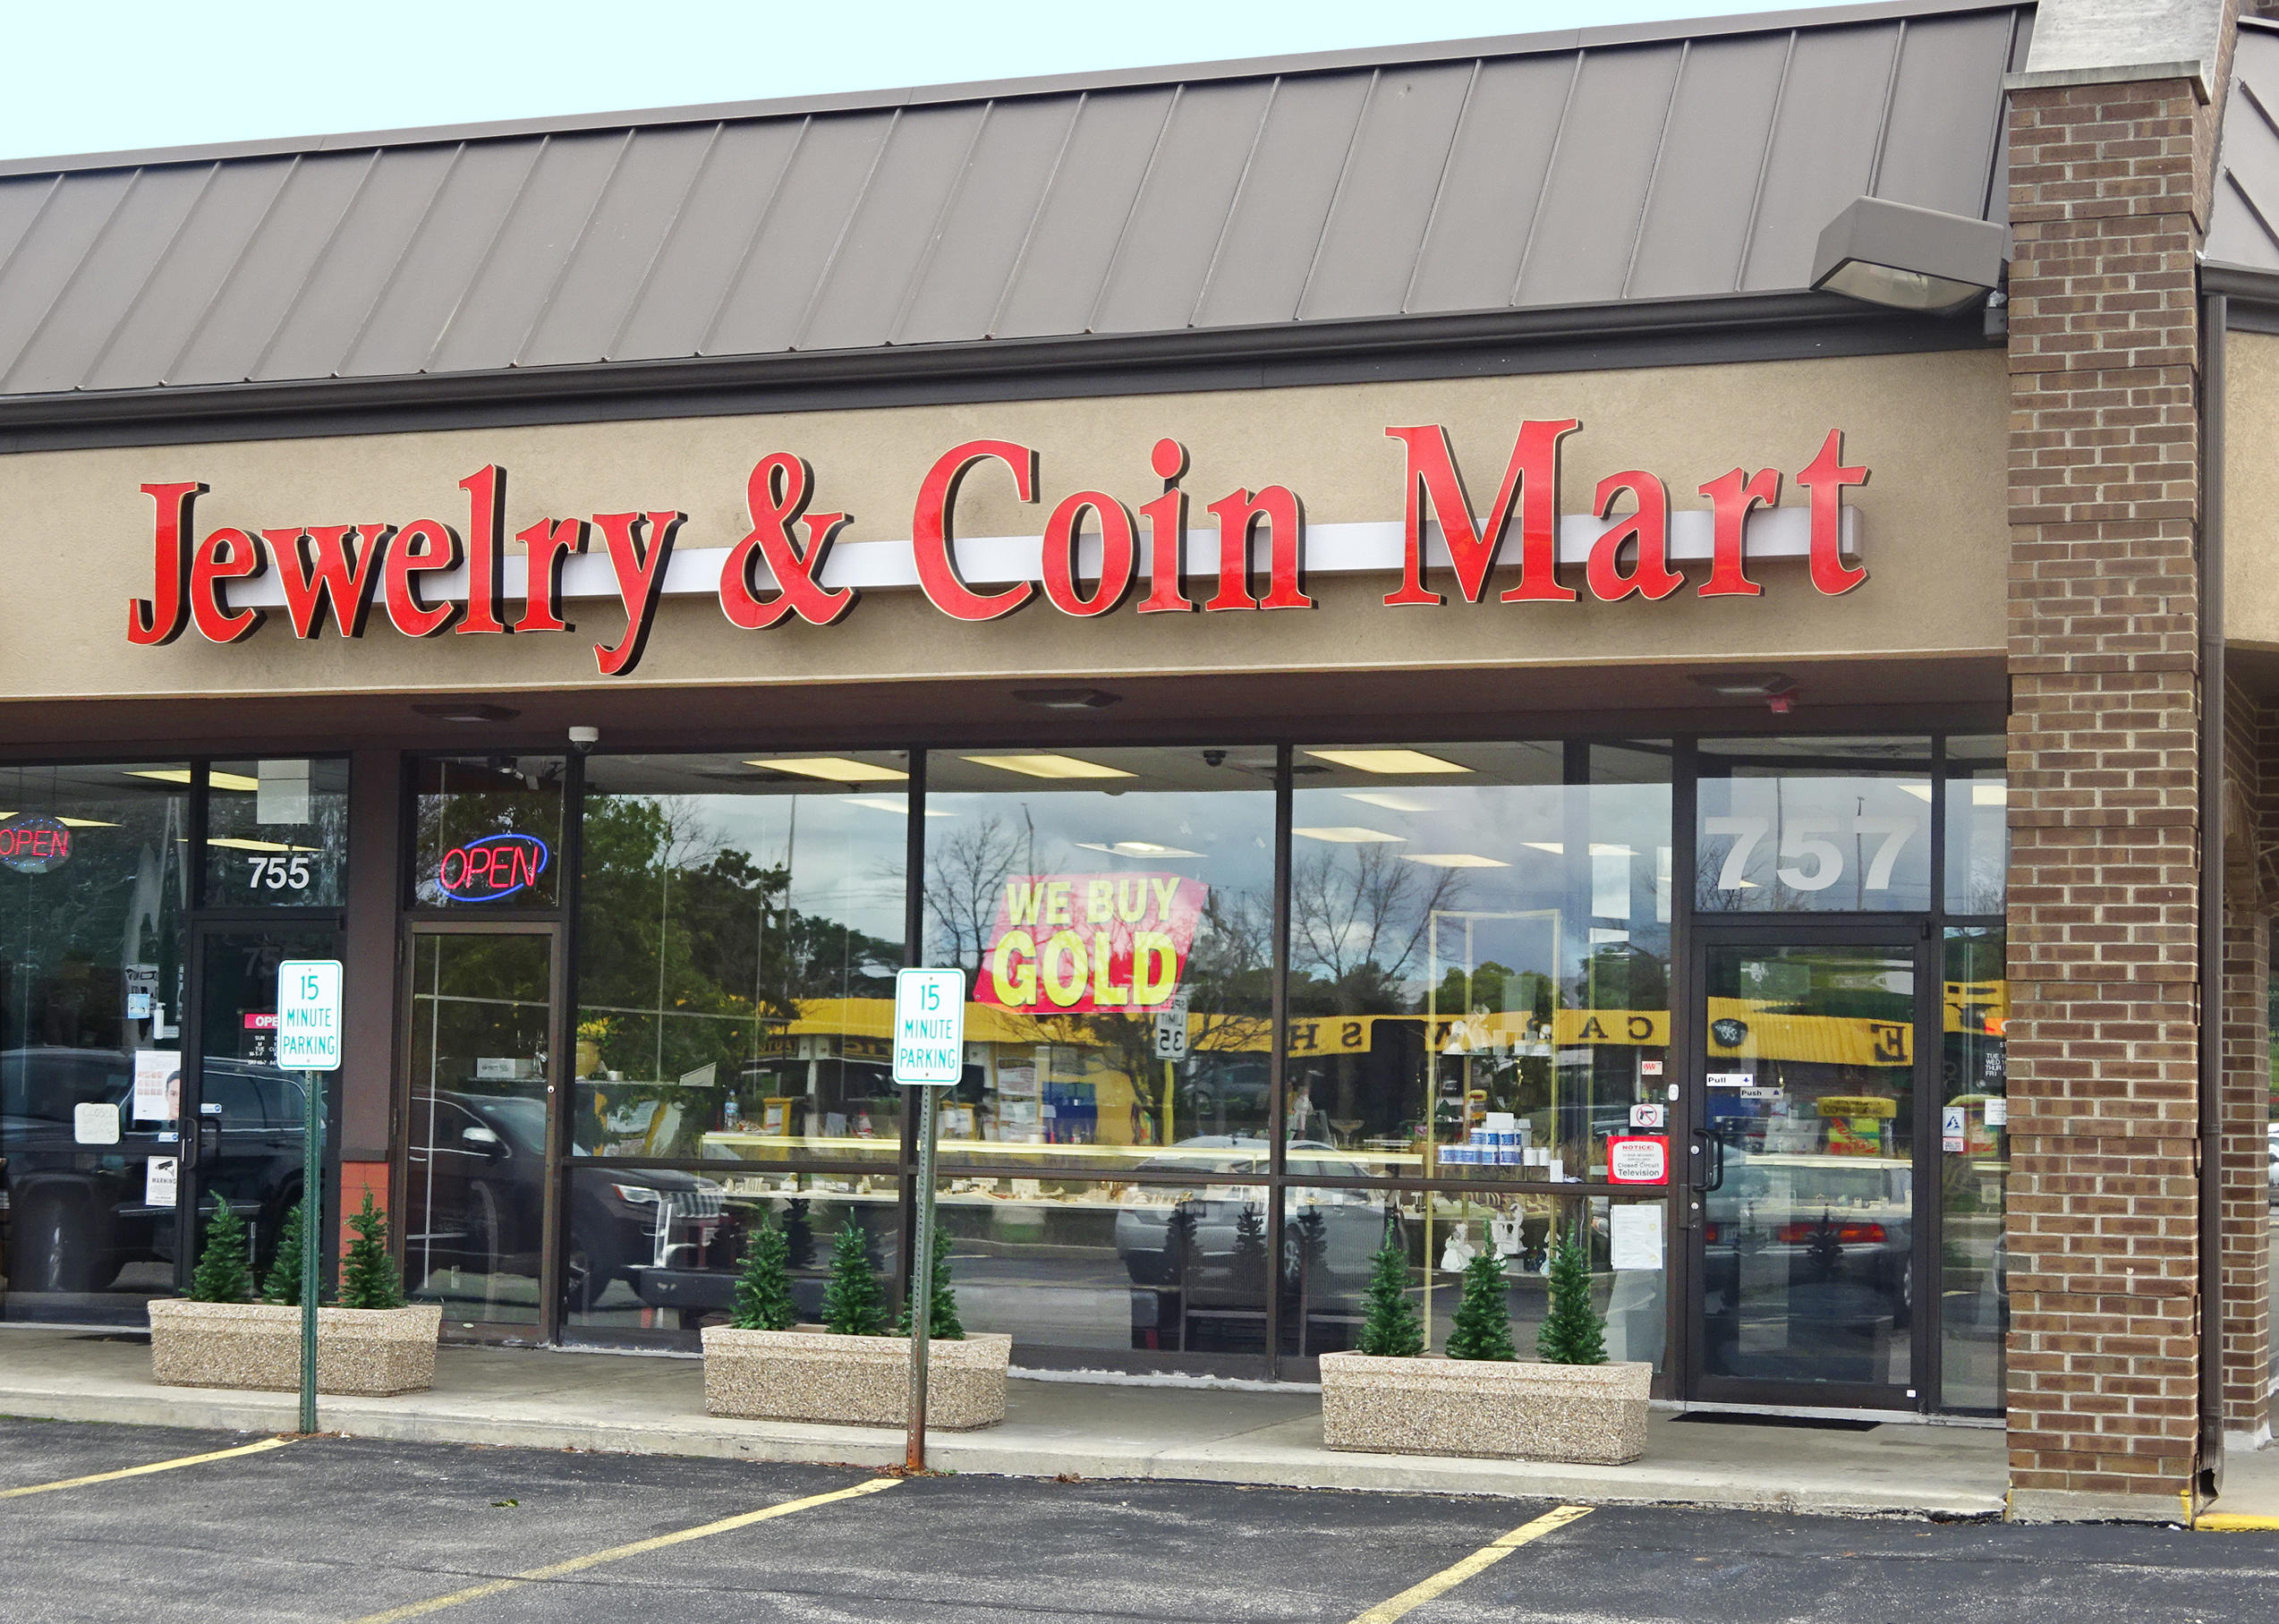 Local Jewelry Stores Near Me Of Jewelry Coin Mart Coupons Near Me In Schaumburg 8coupons